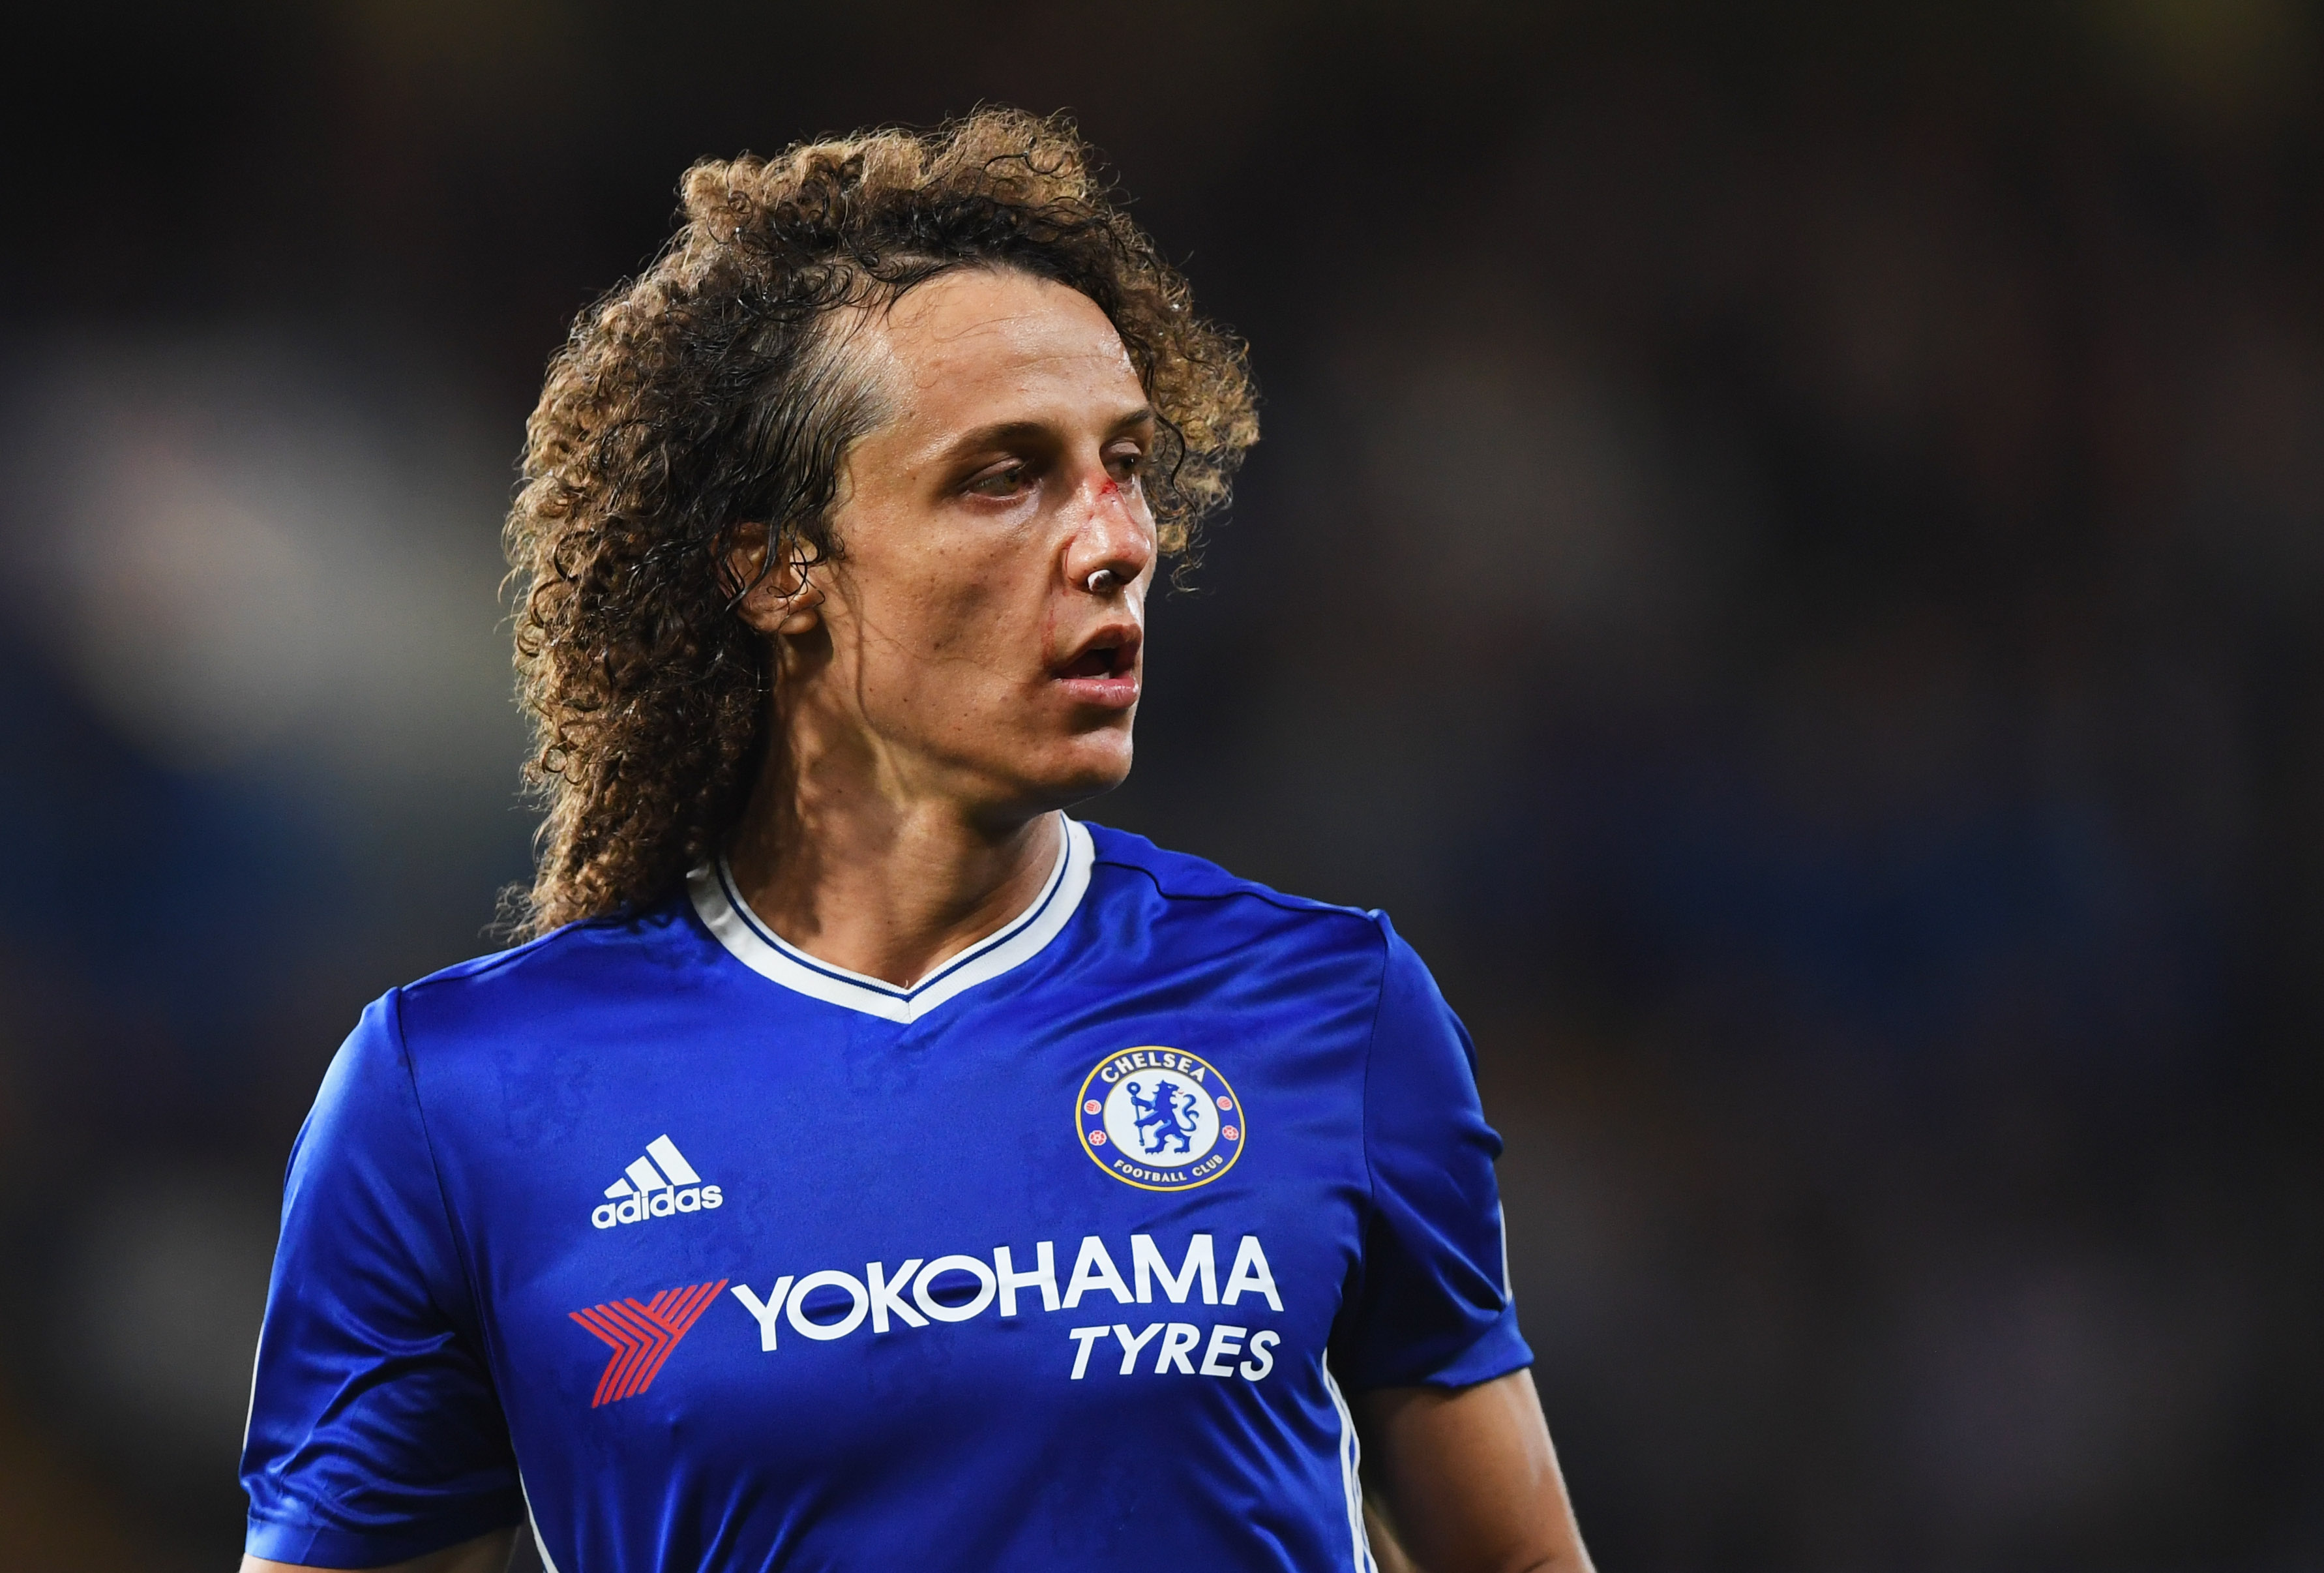 LONDON, ENGLAND - SEPTEMBER 16: A bloody David Luiz of Chelsea looks on during the Premier League match between Chelsea and Liverpool at Stamford Bridge on September 16, 2016 in London, England. (Photo by Shaun Botterill/Getty Images)